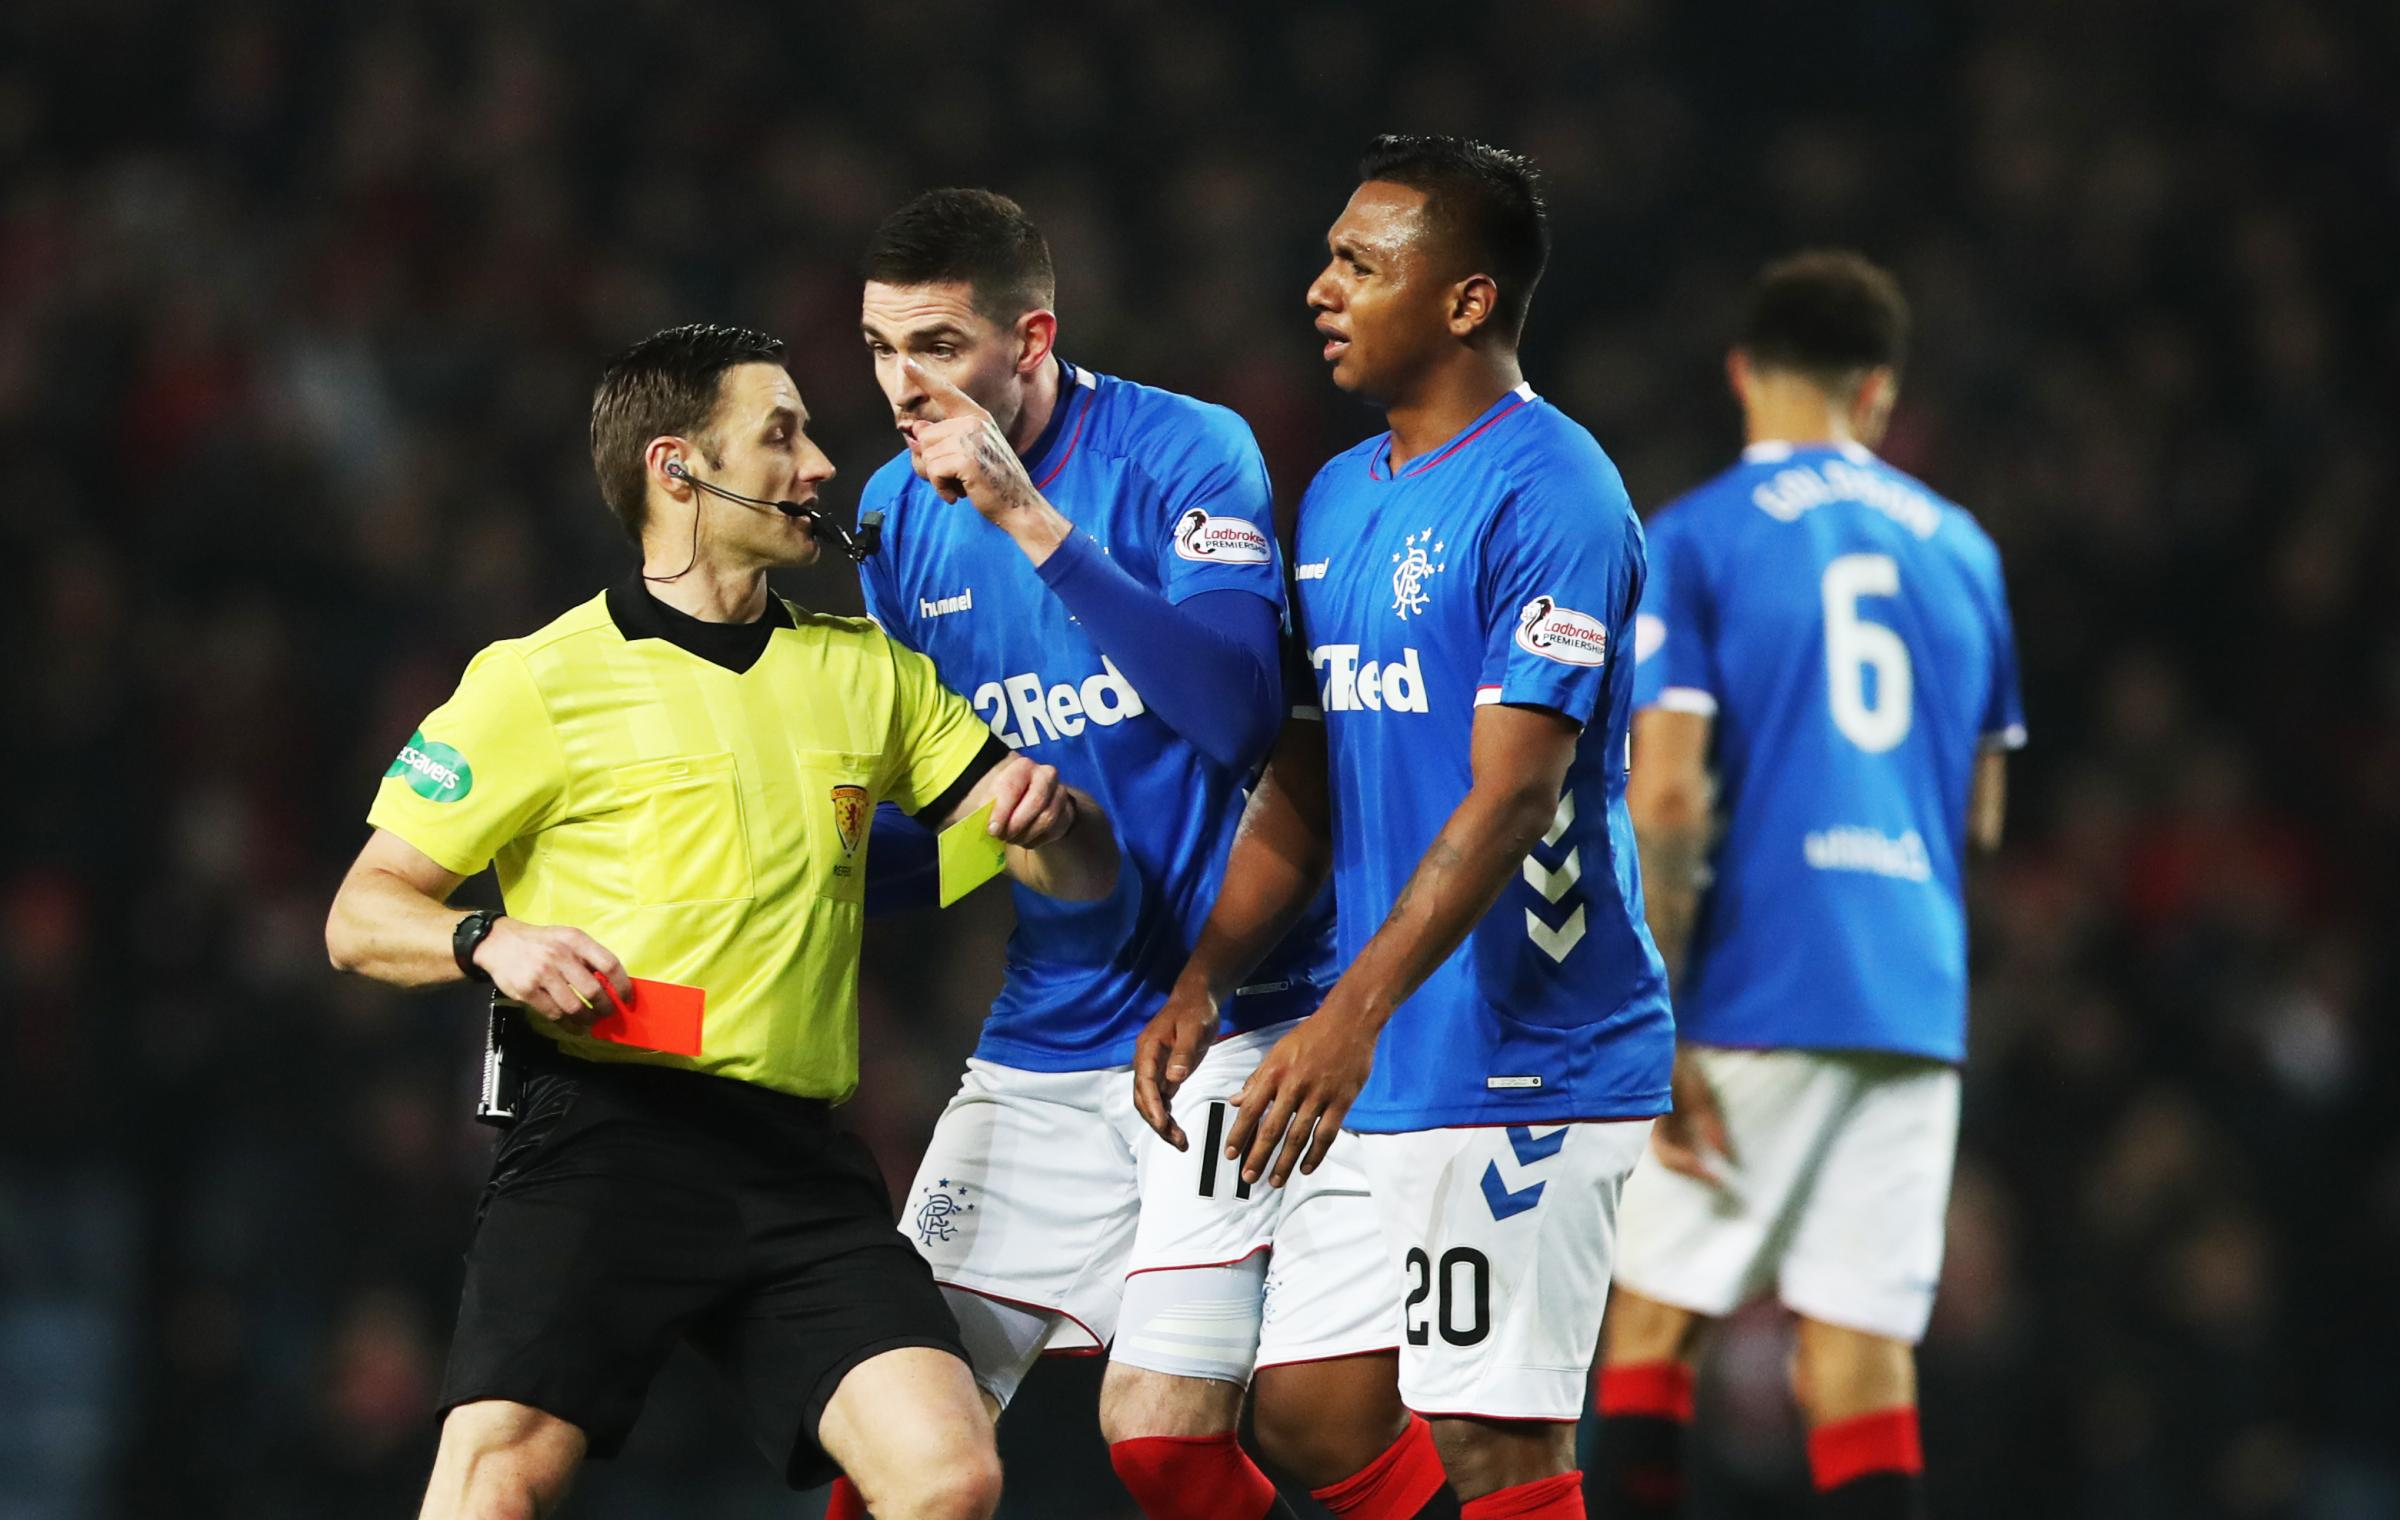 GLASGOW, SCOTLAND - DECEMBER 05: Kyle Lafferty of Rangers remonstrates with referee Steven McLean after Alfredo Morelos of Rangers lis given a second yellow card during the Scottish Ladbrokes Premiership match between Rangers and Aberdeen at Ibrox Stadium